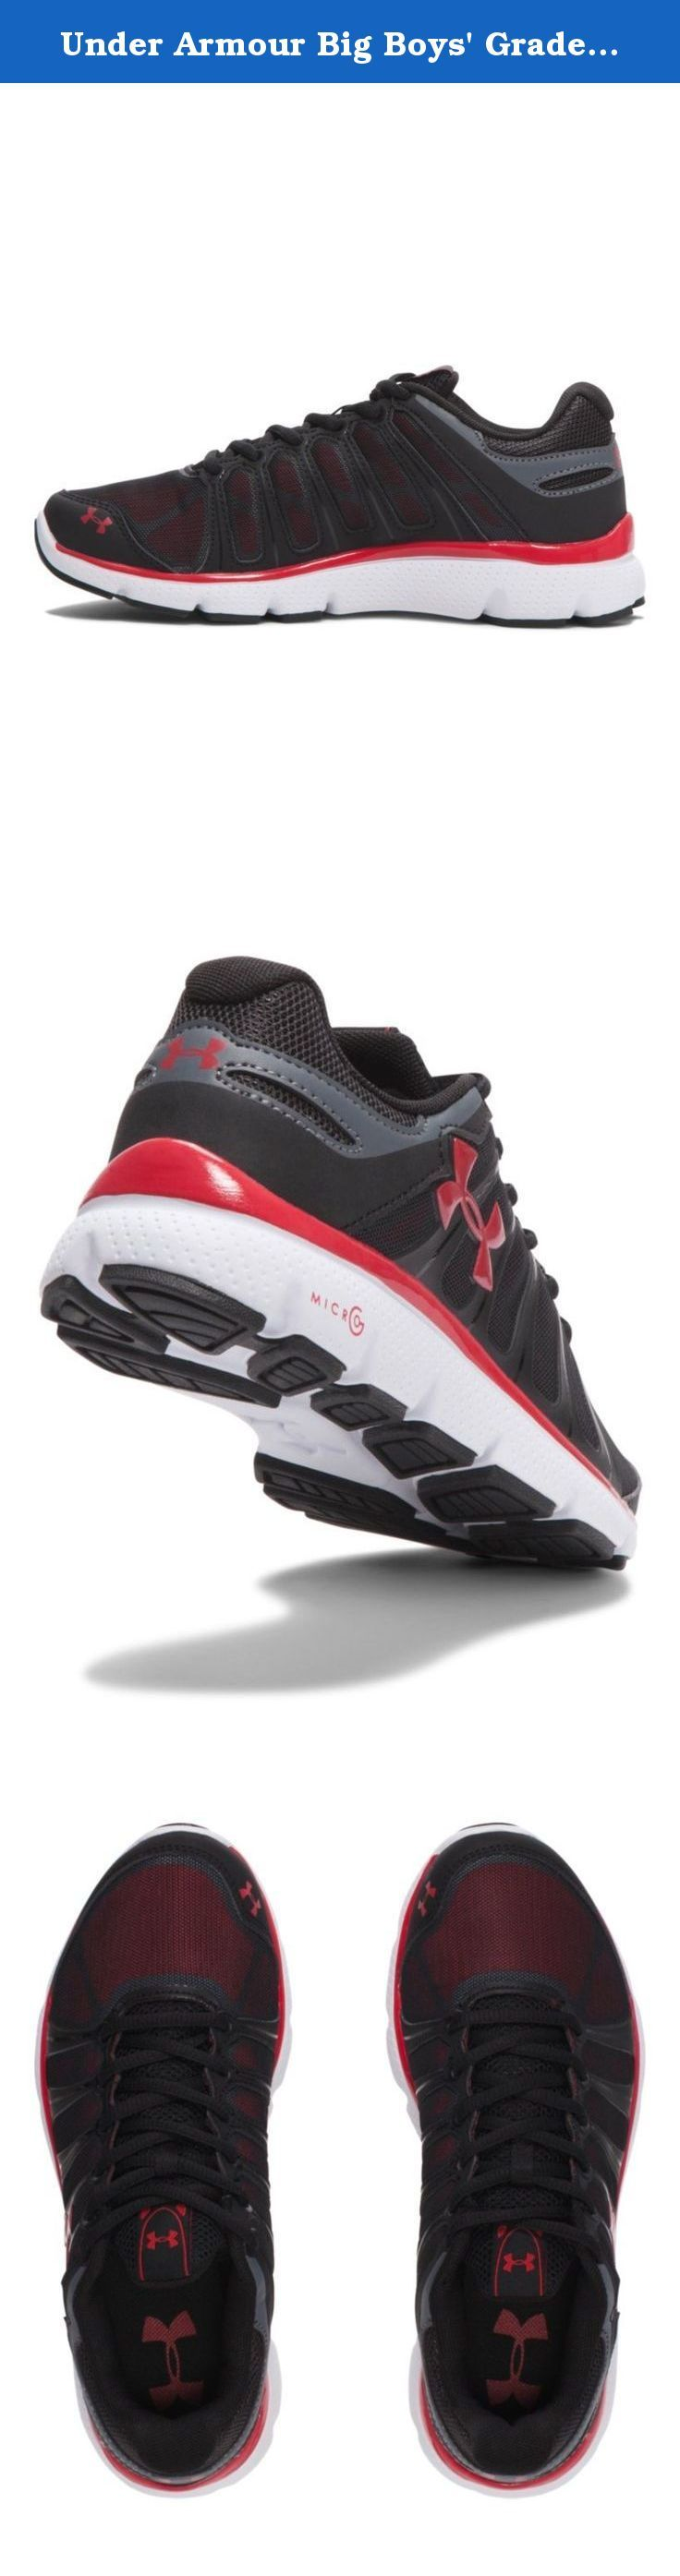 Under Armour Big Boys' Grade School UA Micro G Pulse II Running Shoes 6.5 Black. Non-marking rubber outsole covers high impact zones for greater durability with less weight.